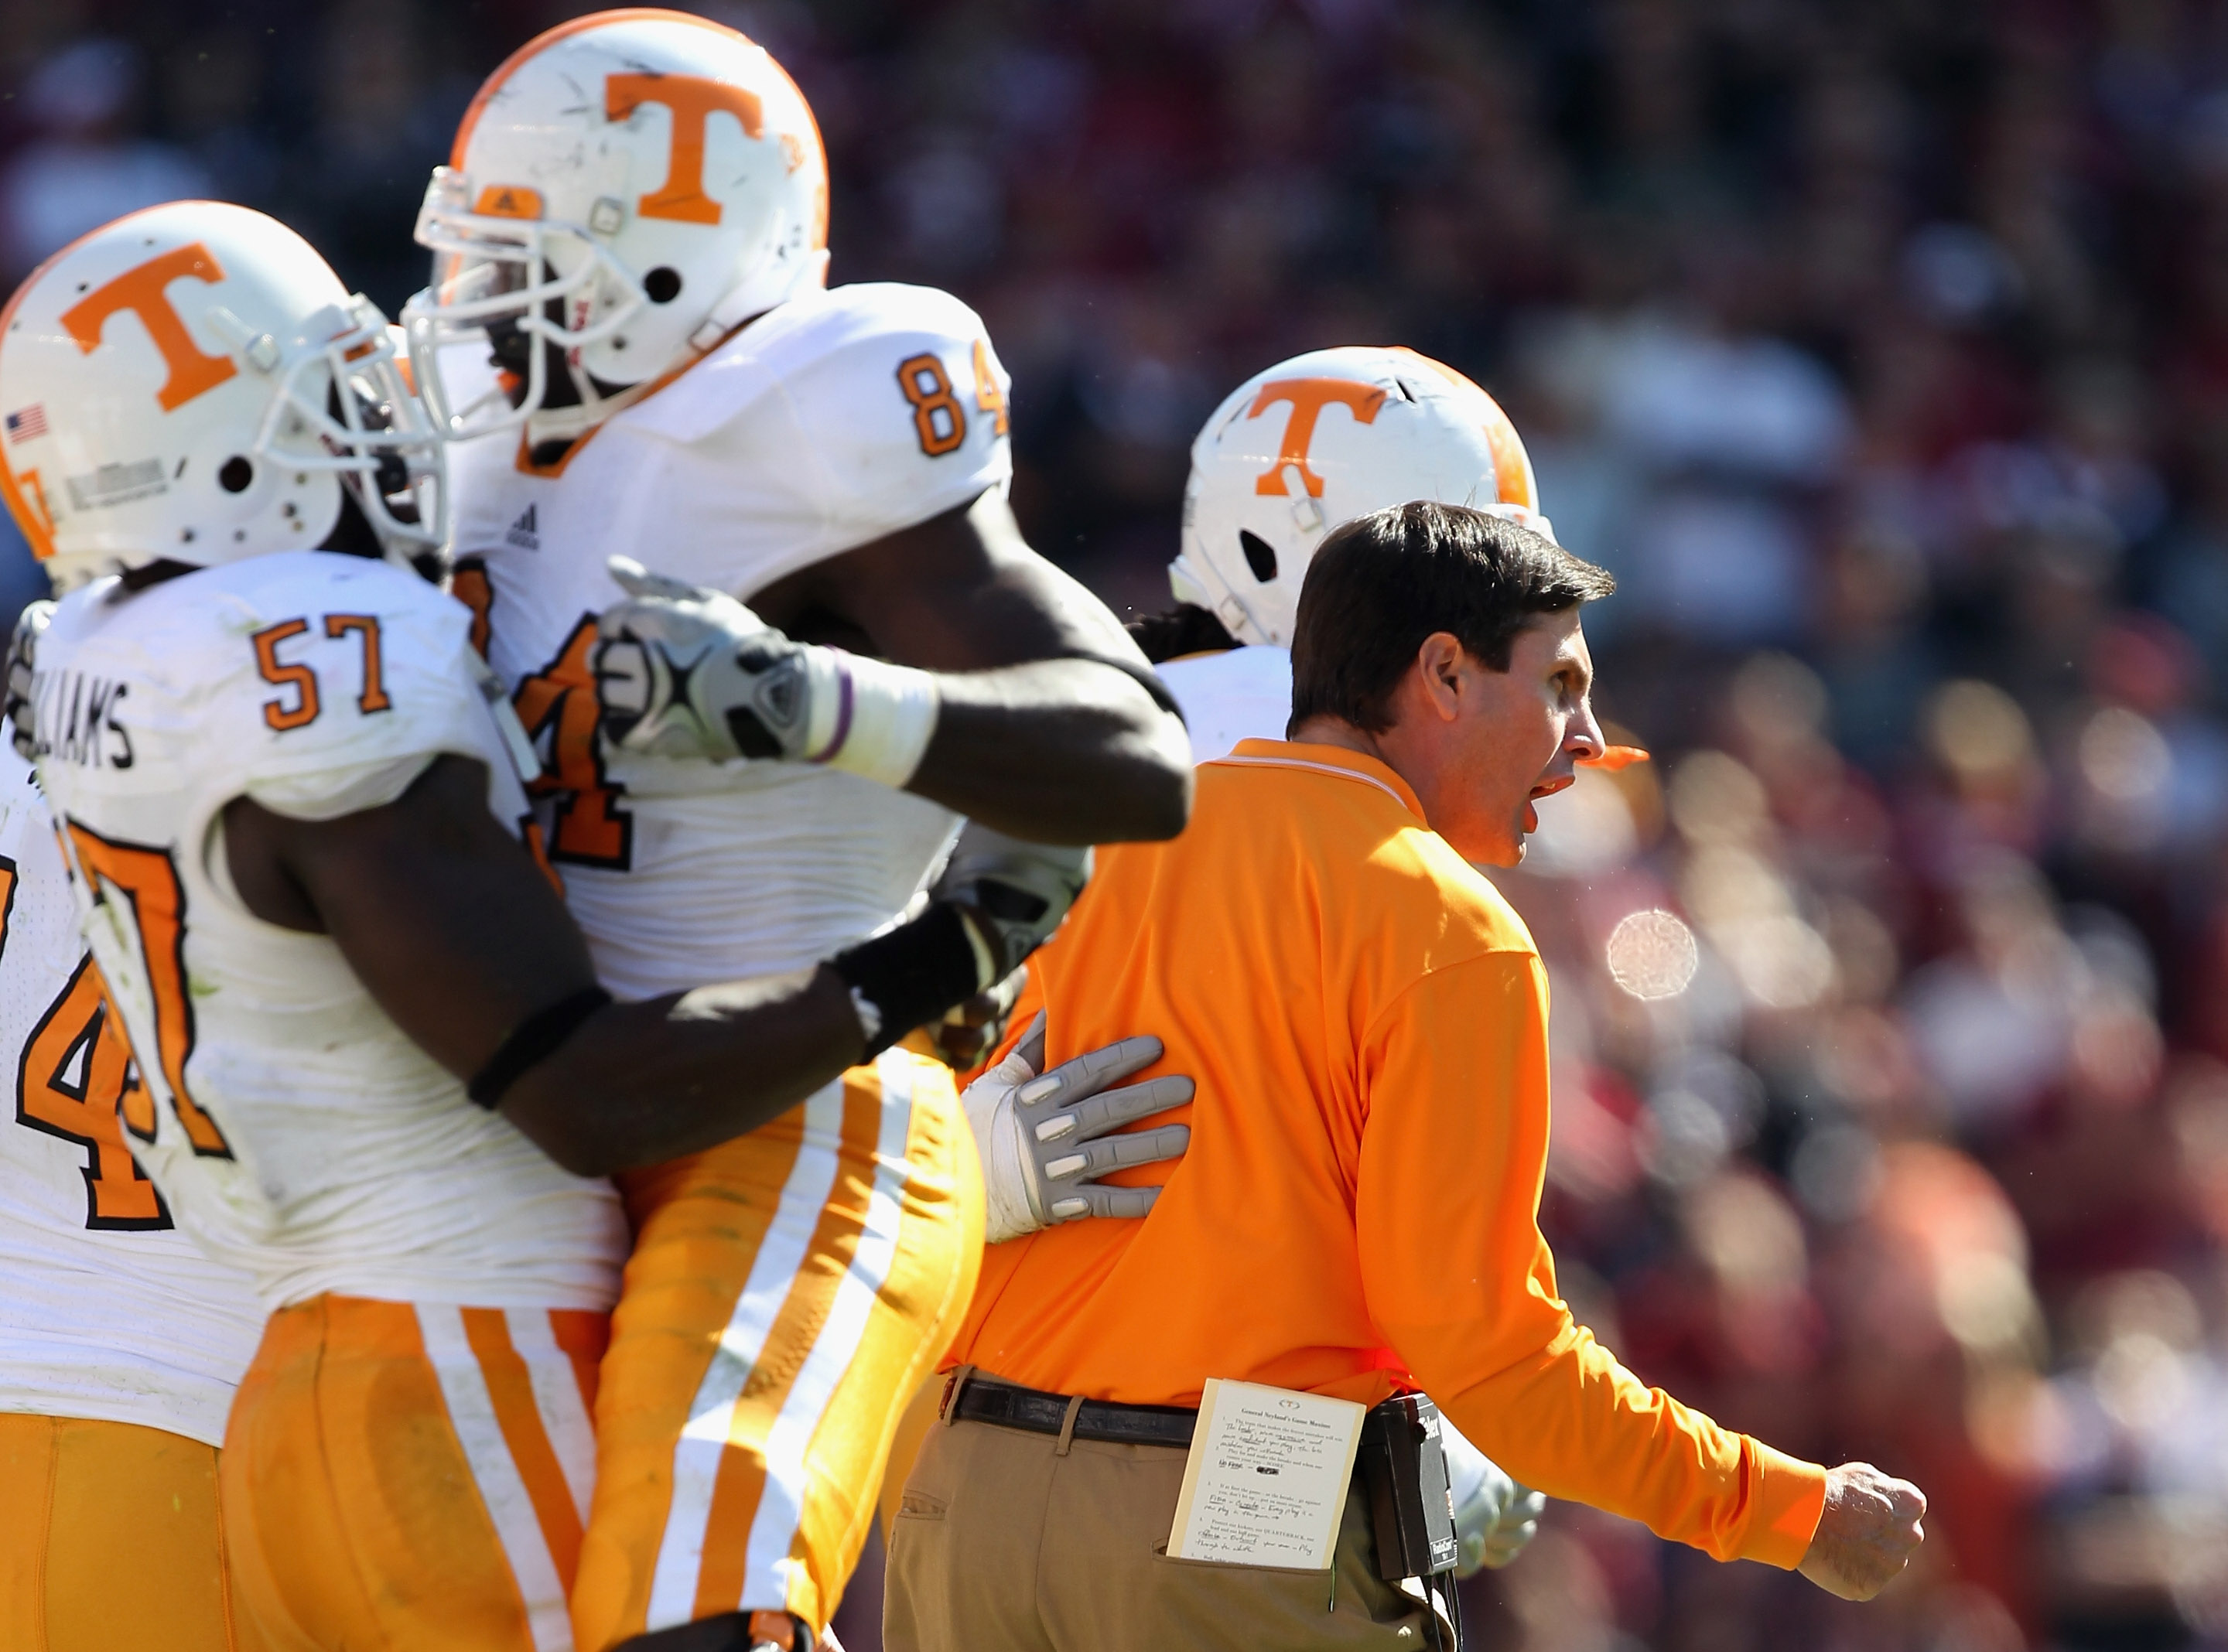 5949c333c College Football: 7 Teams That Are More Popular Than Their NFL Counterparts